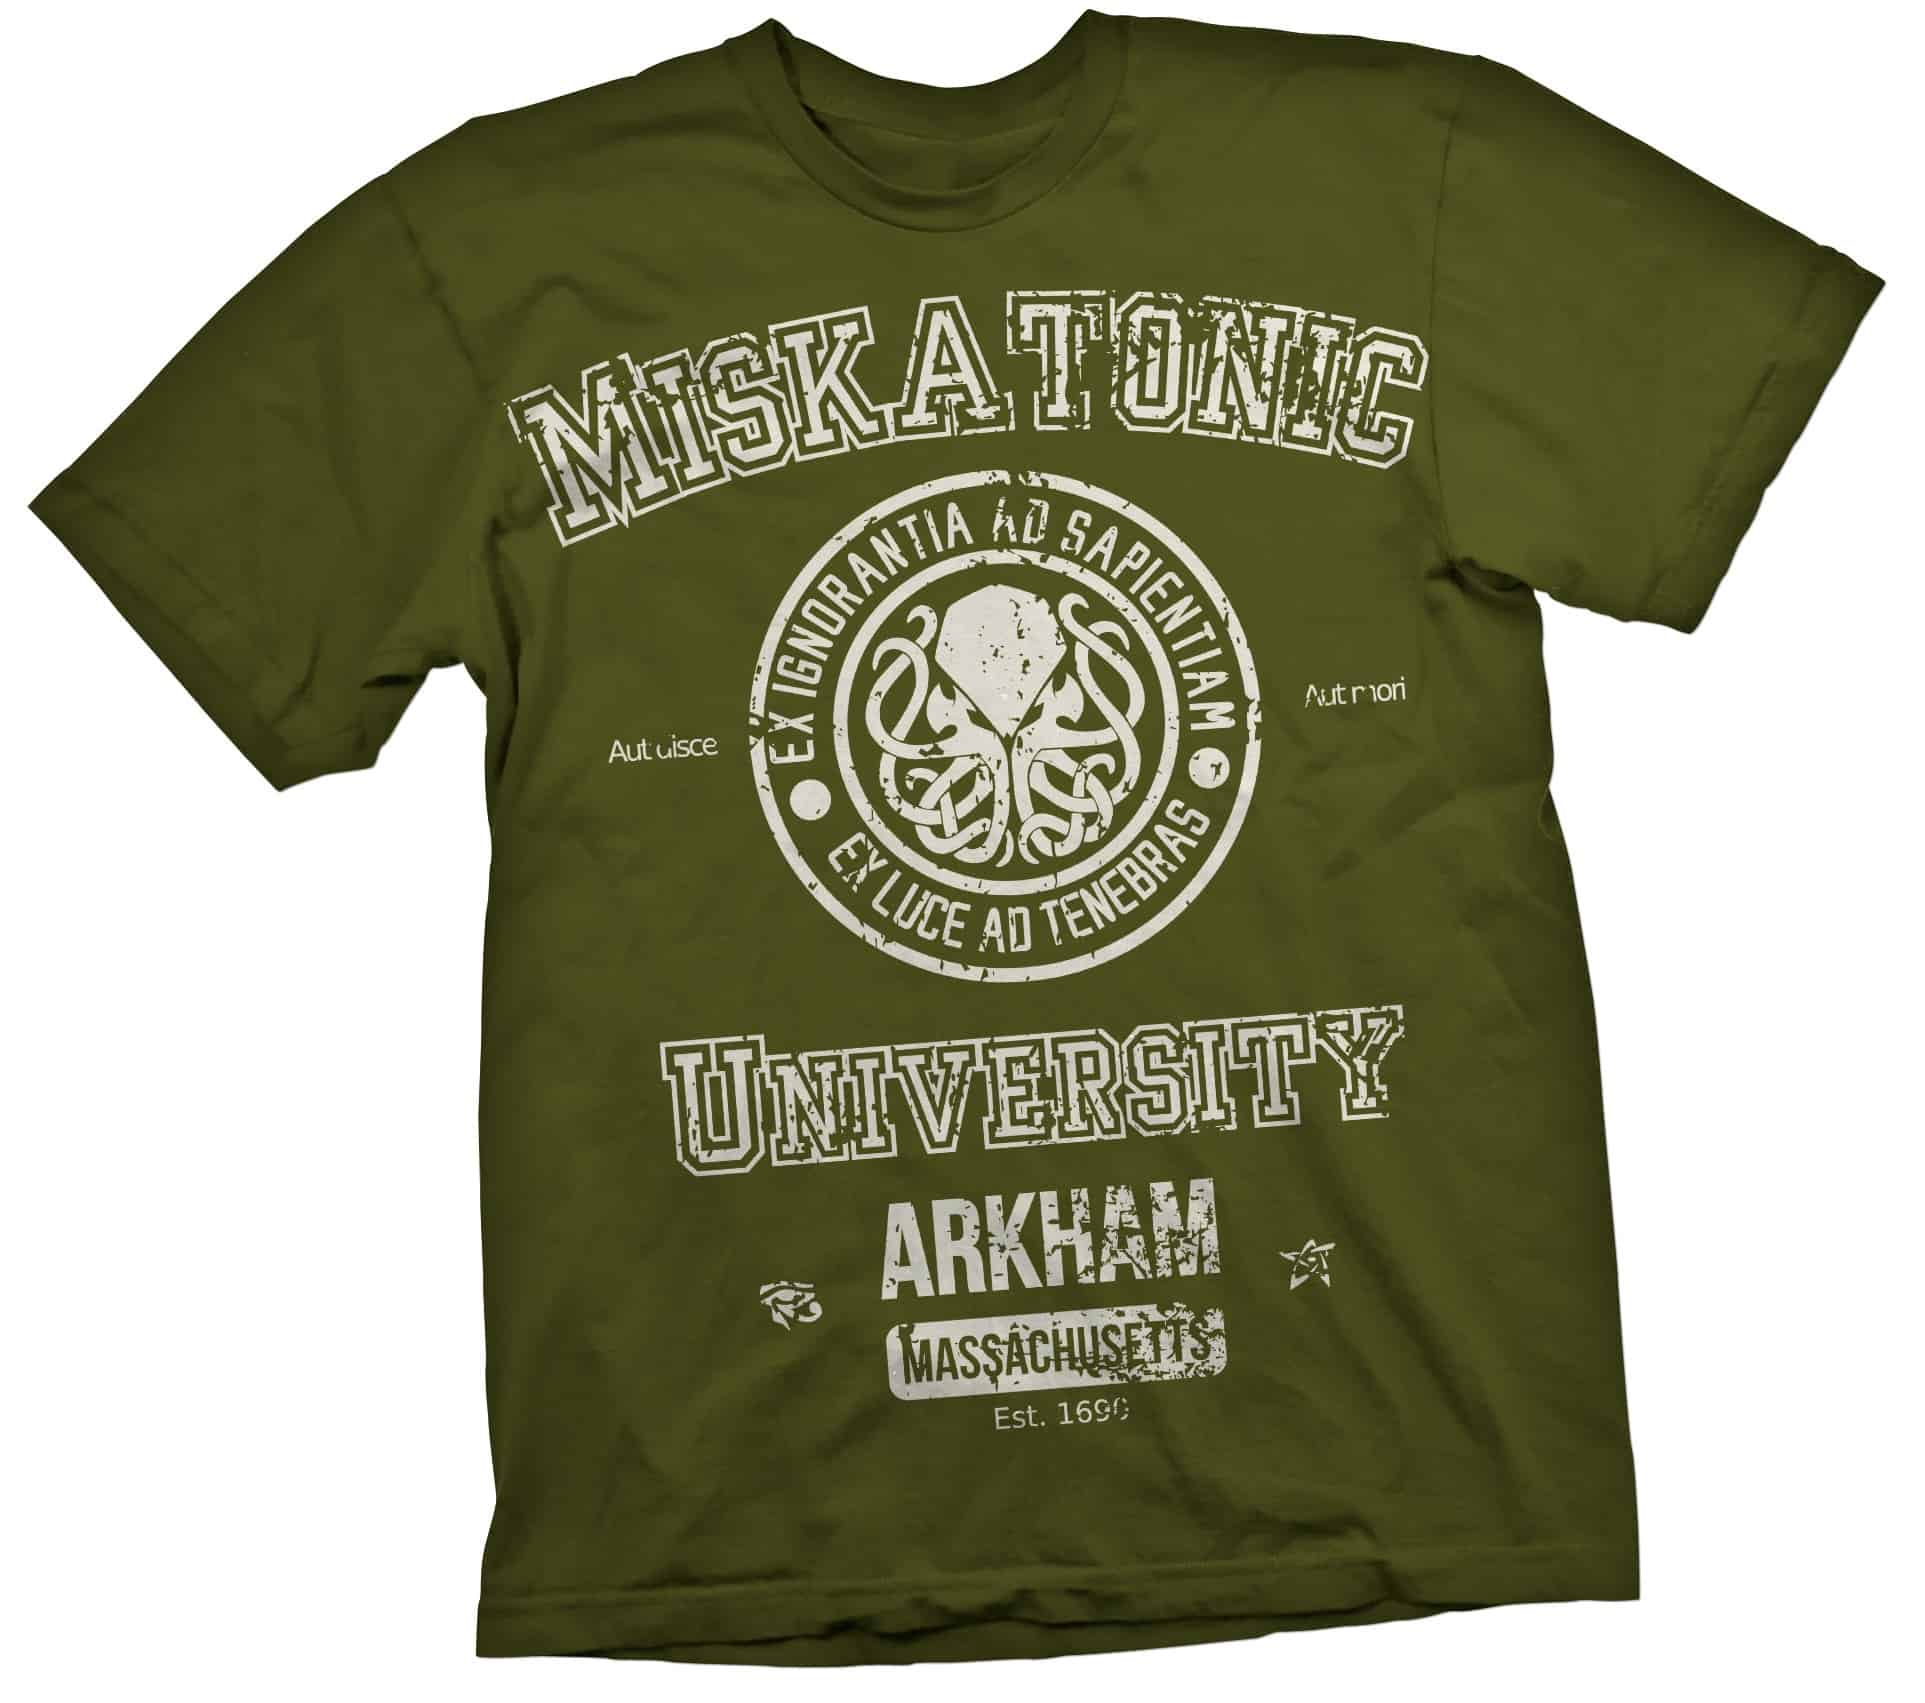 O.FLASH - MISKATONIC CAMISETA VERDE CHICO T-S CTHULHU